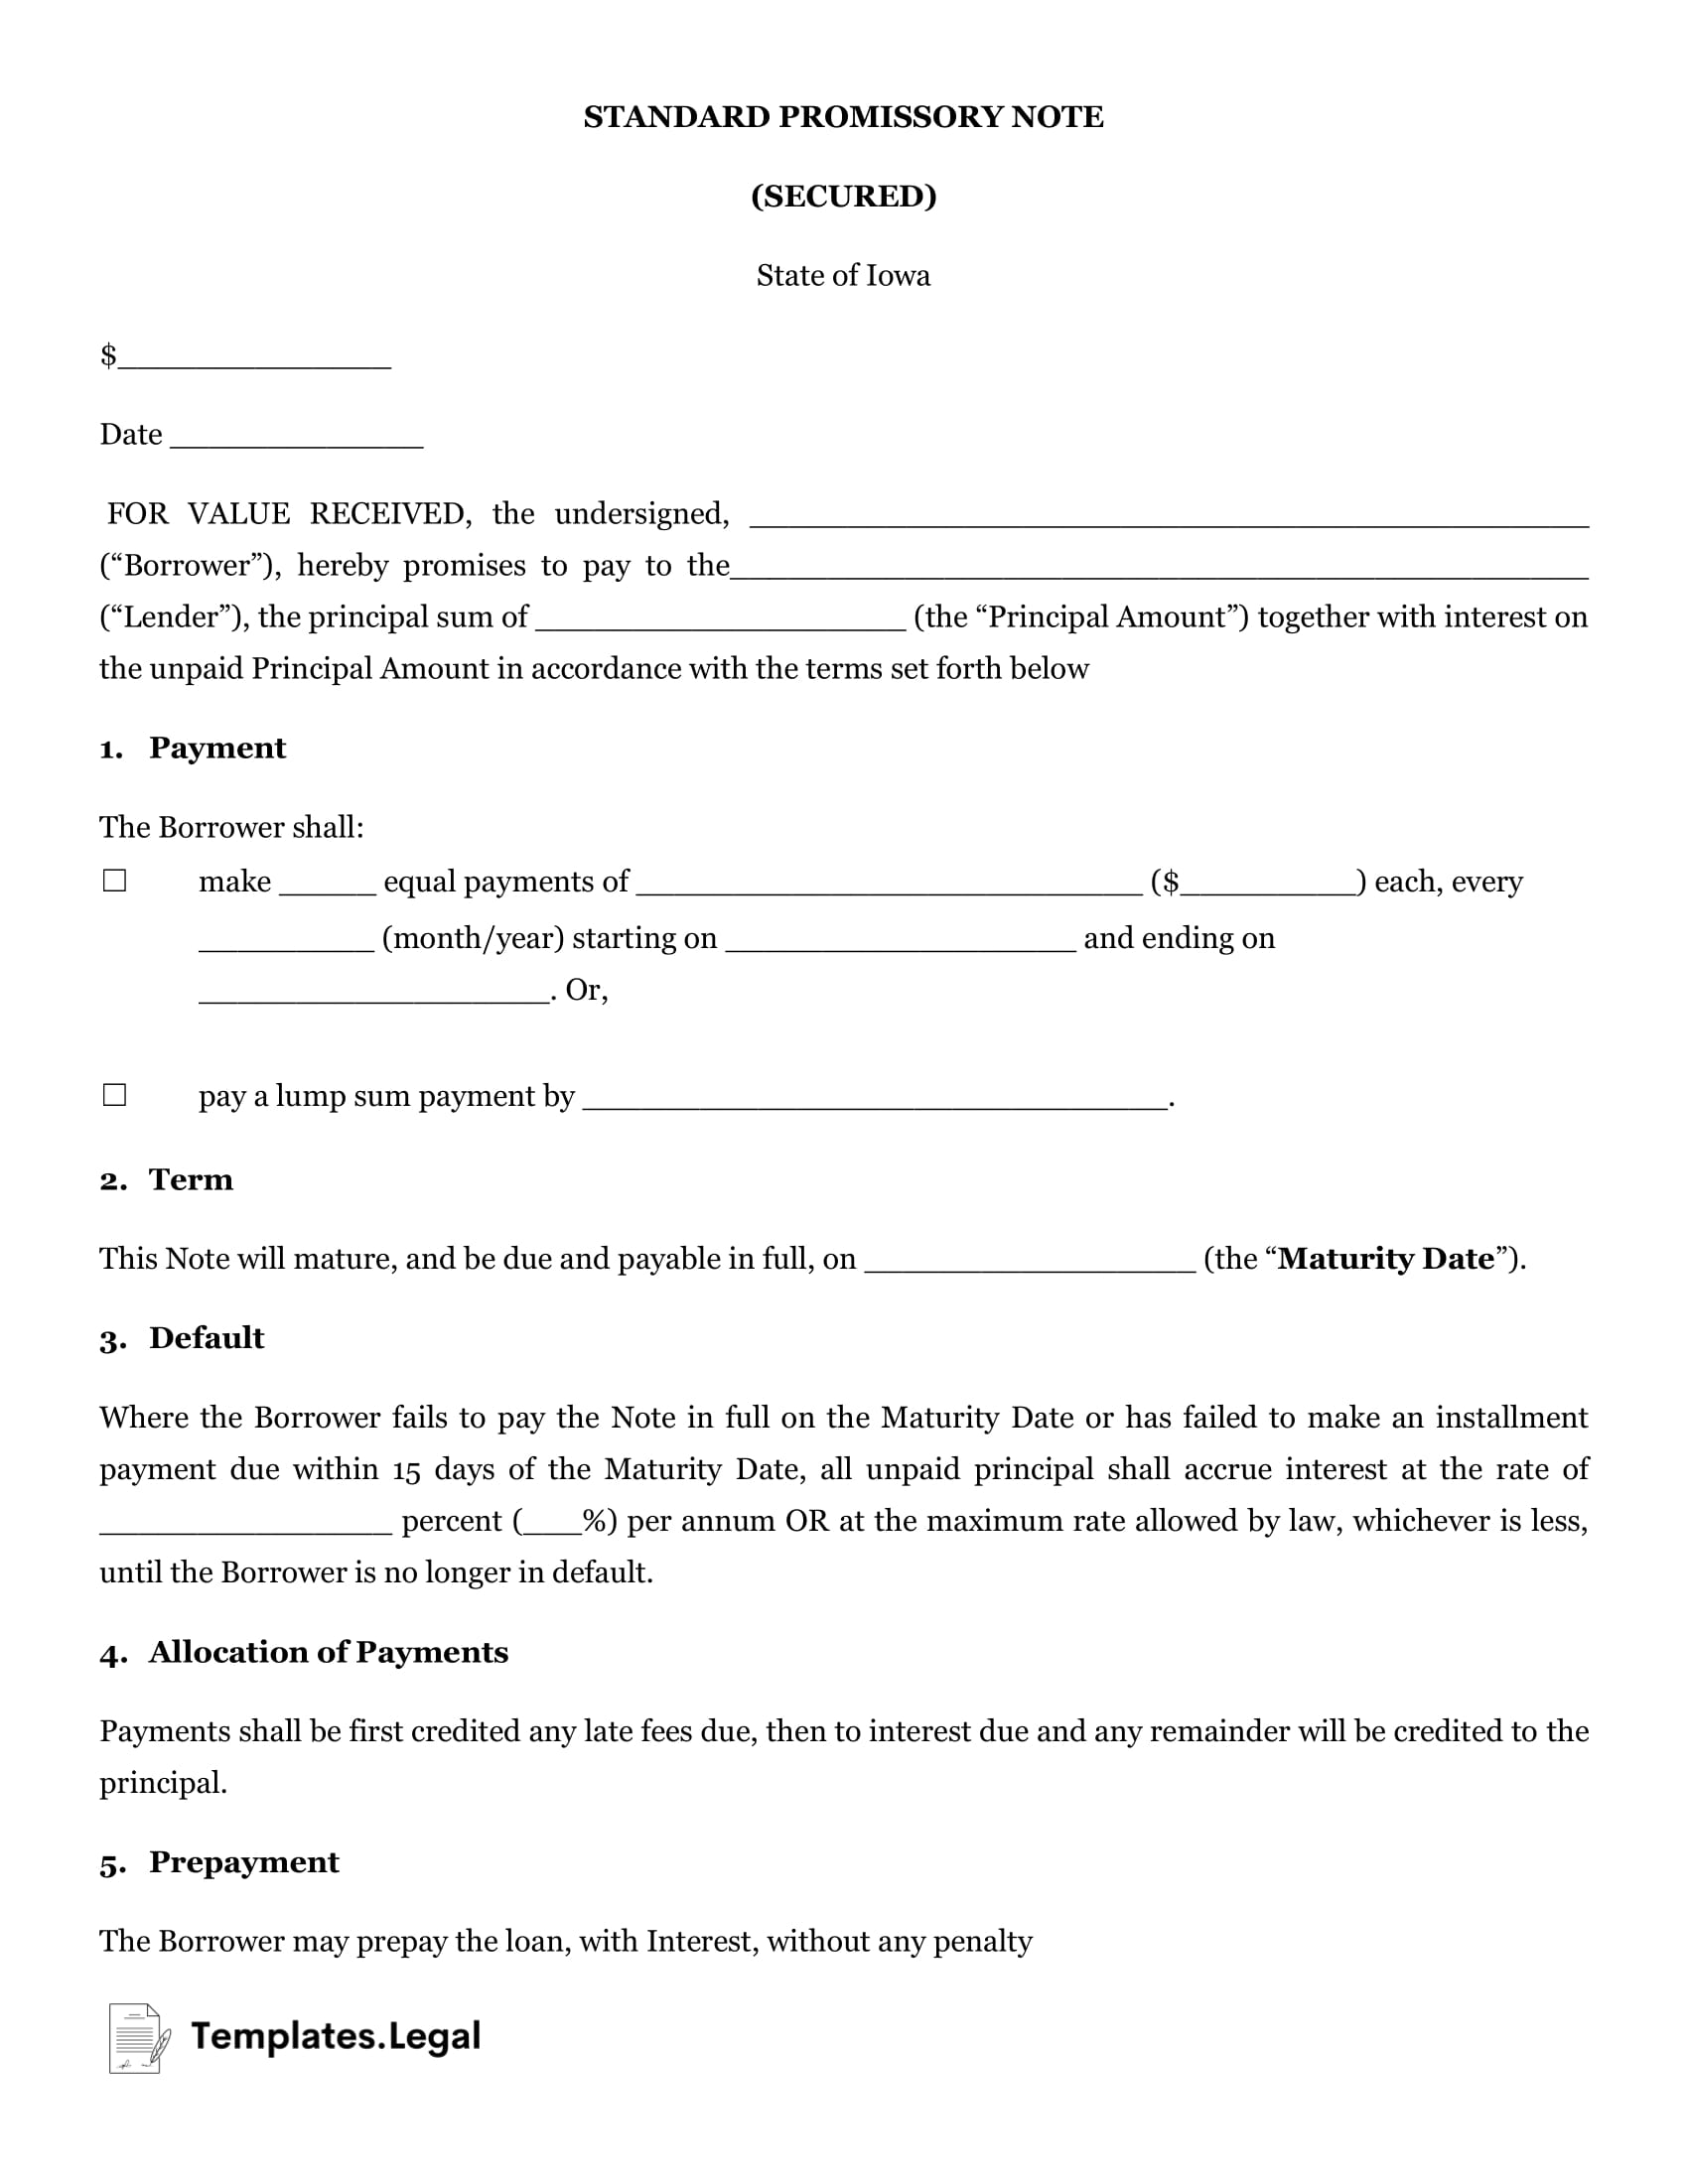 Iowa Secured Promissory Note - Templates.Legal